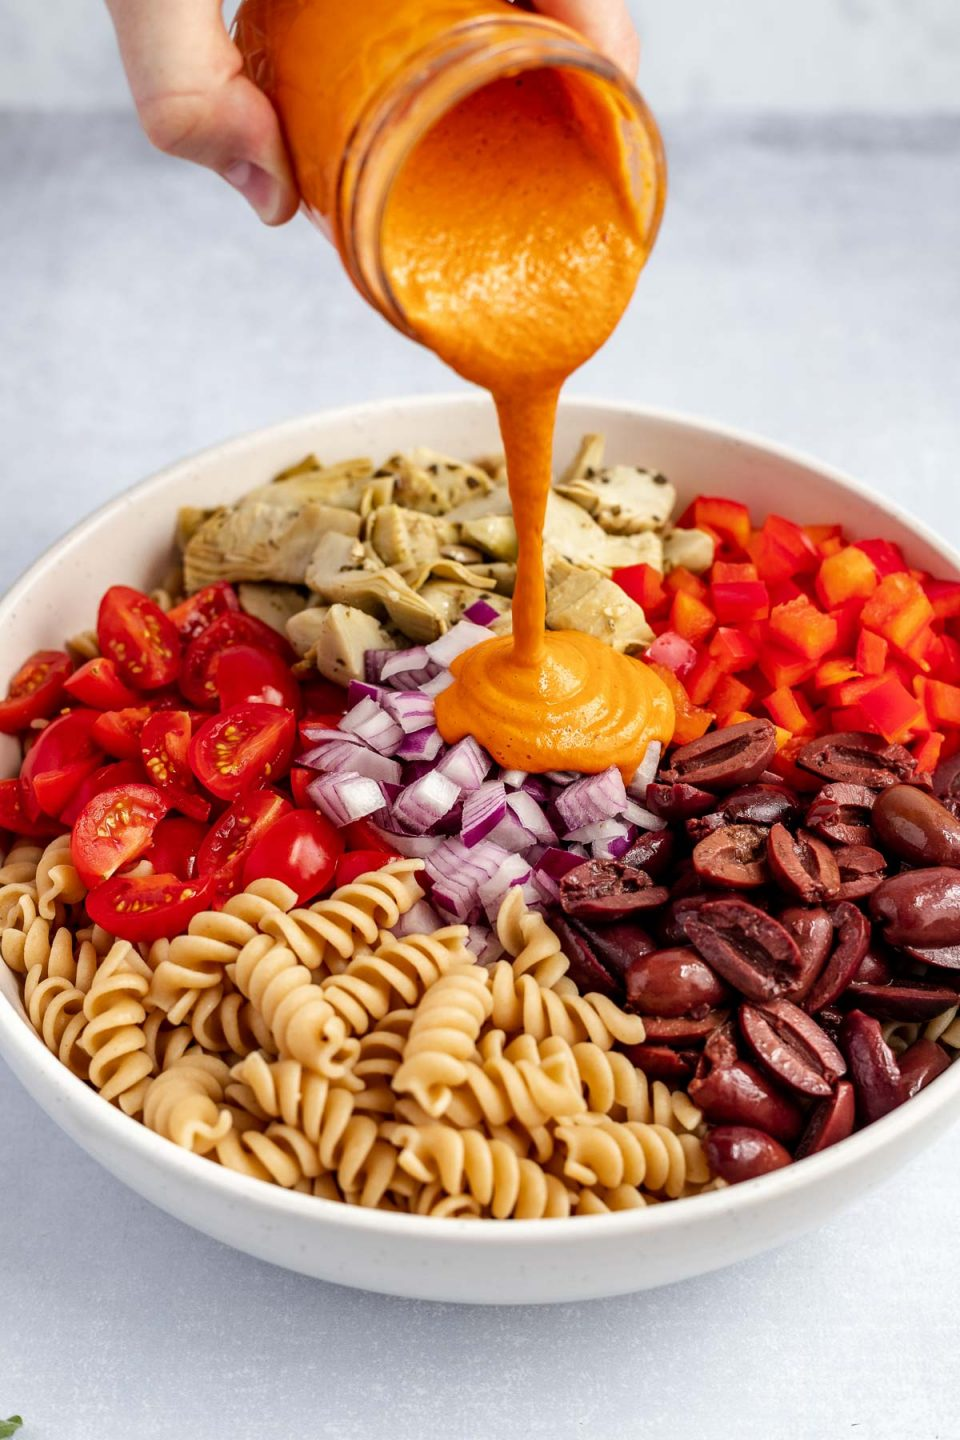 A woman's hand pours roasted red pepper cashew dressing out of a small glass jar, into a large mixing bowl with the rest of the easy Italian pasta salad ingredients. The bowl sits atop a light blue surface.